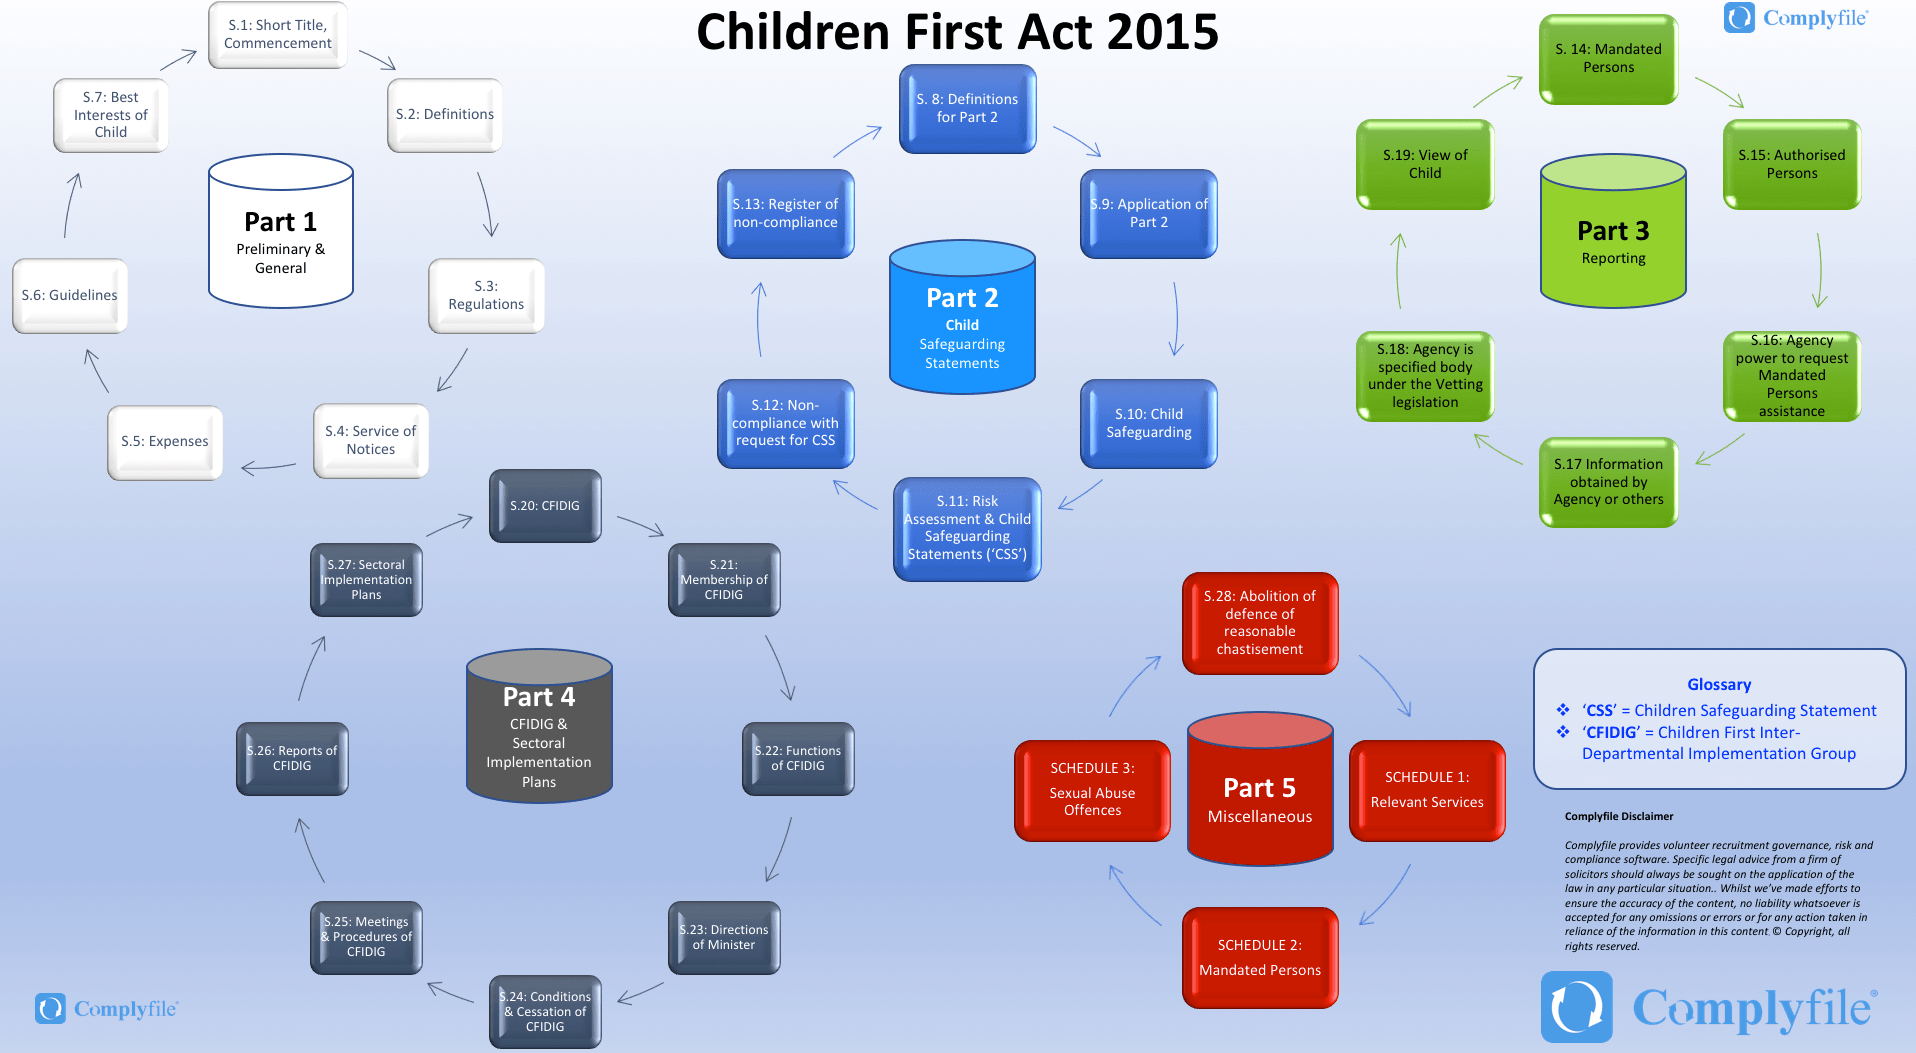 A Roadmap to the Children First Act 2015